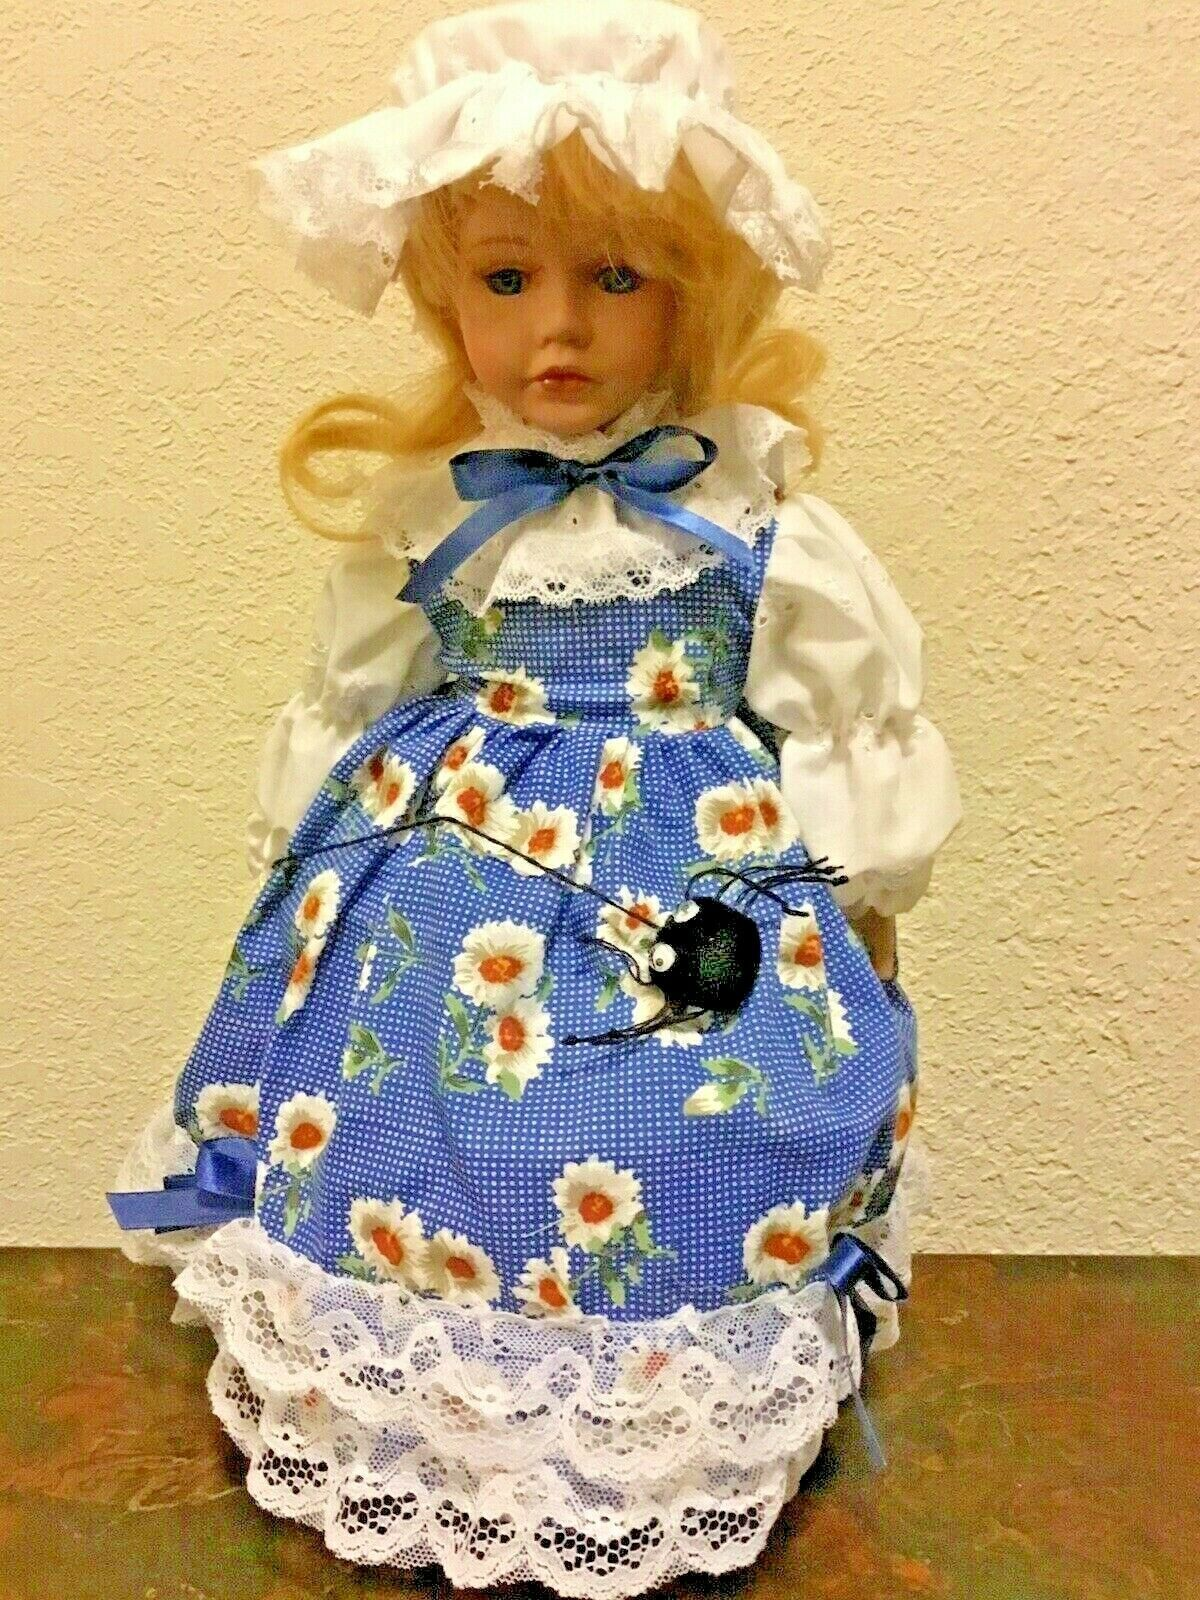 Brinn's Porcelain Doll Little Miss Muffet Authentic Collectible Nursery Rhyme